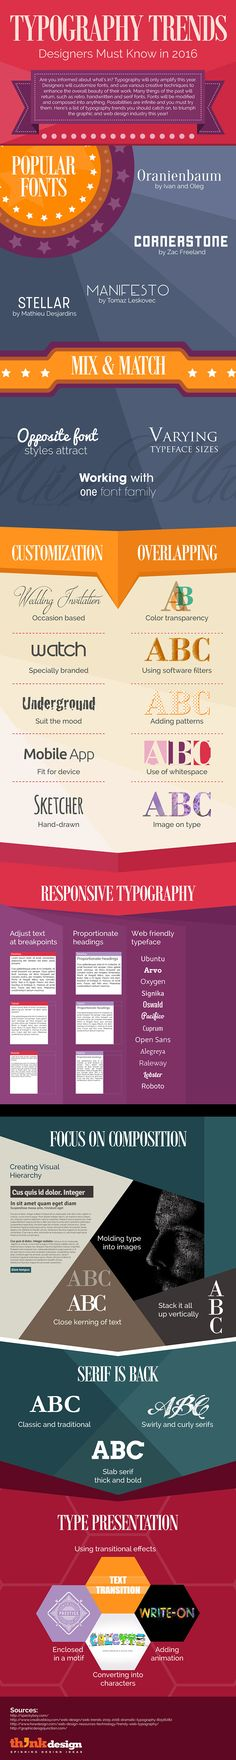 Font selection is an important part of branding. Here are some choices…